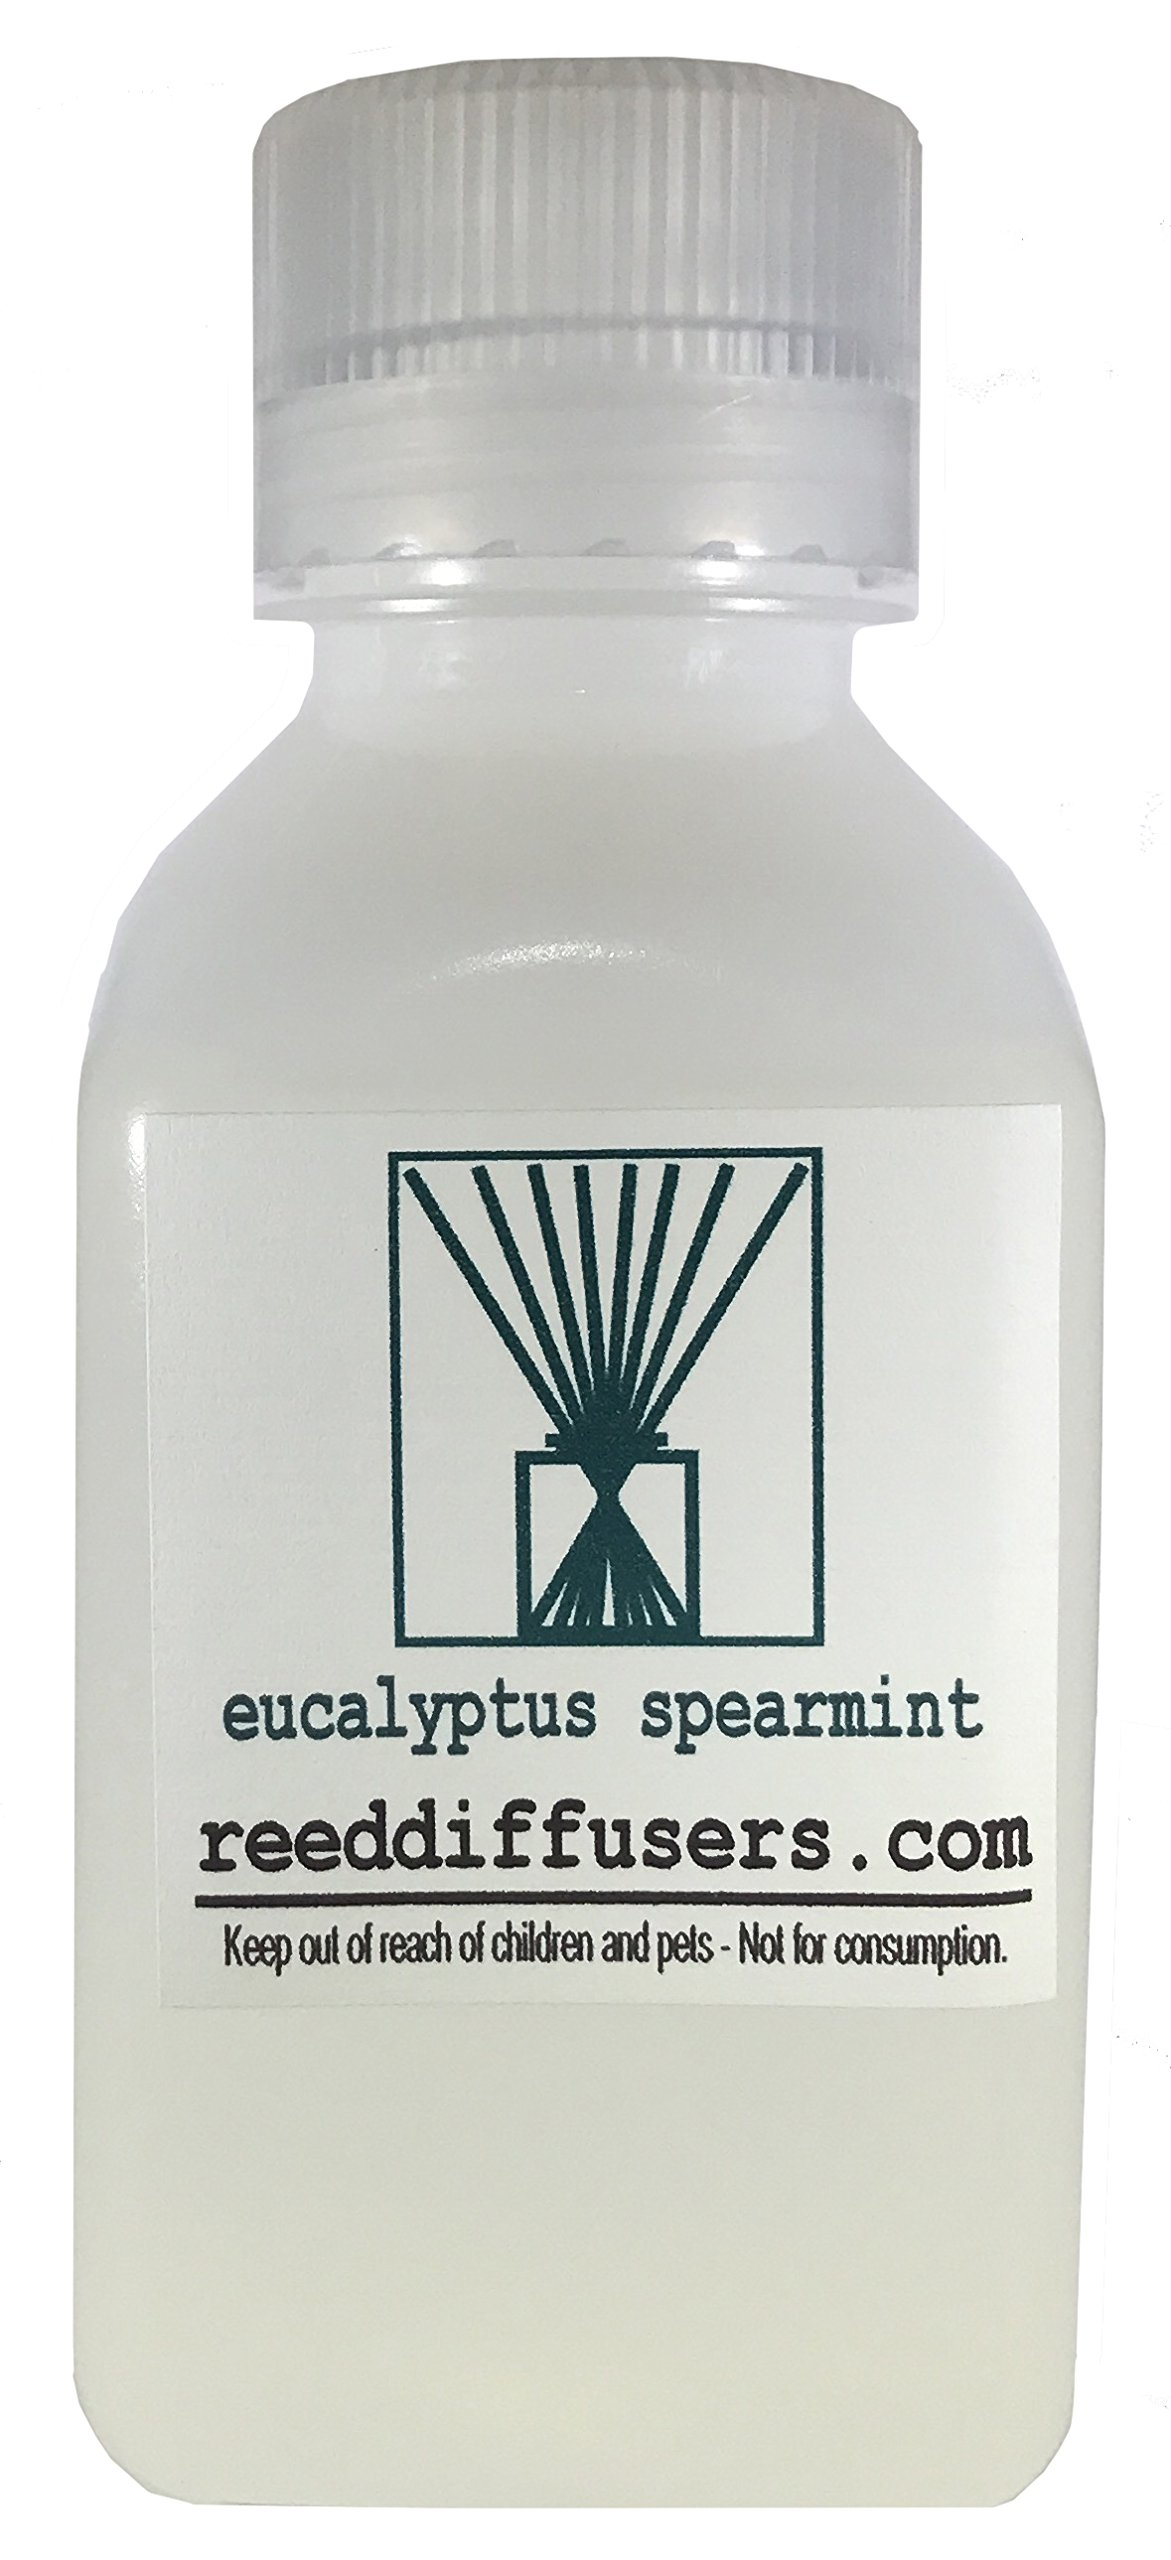 Eucalyptus Spearmint Fragrance Reed Diffuser Oil Refill - 8oz - Made in the USA